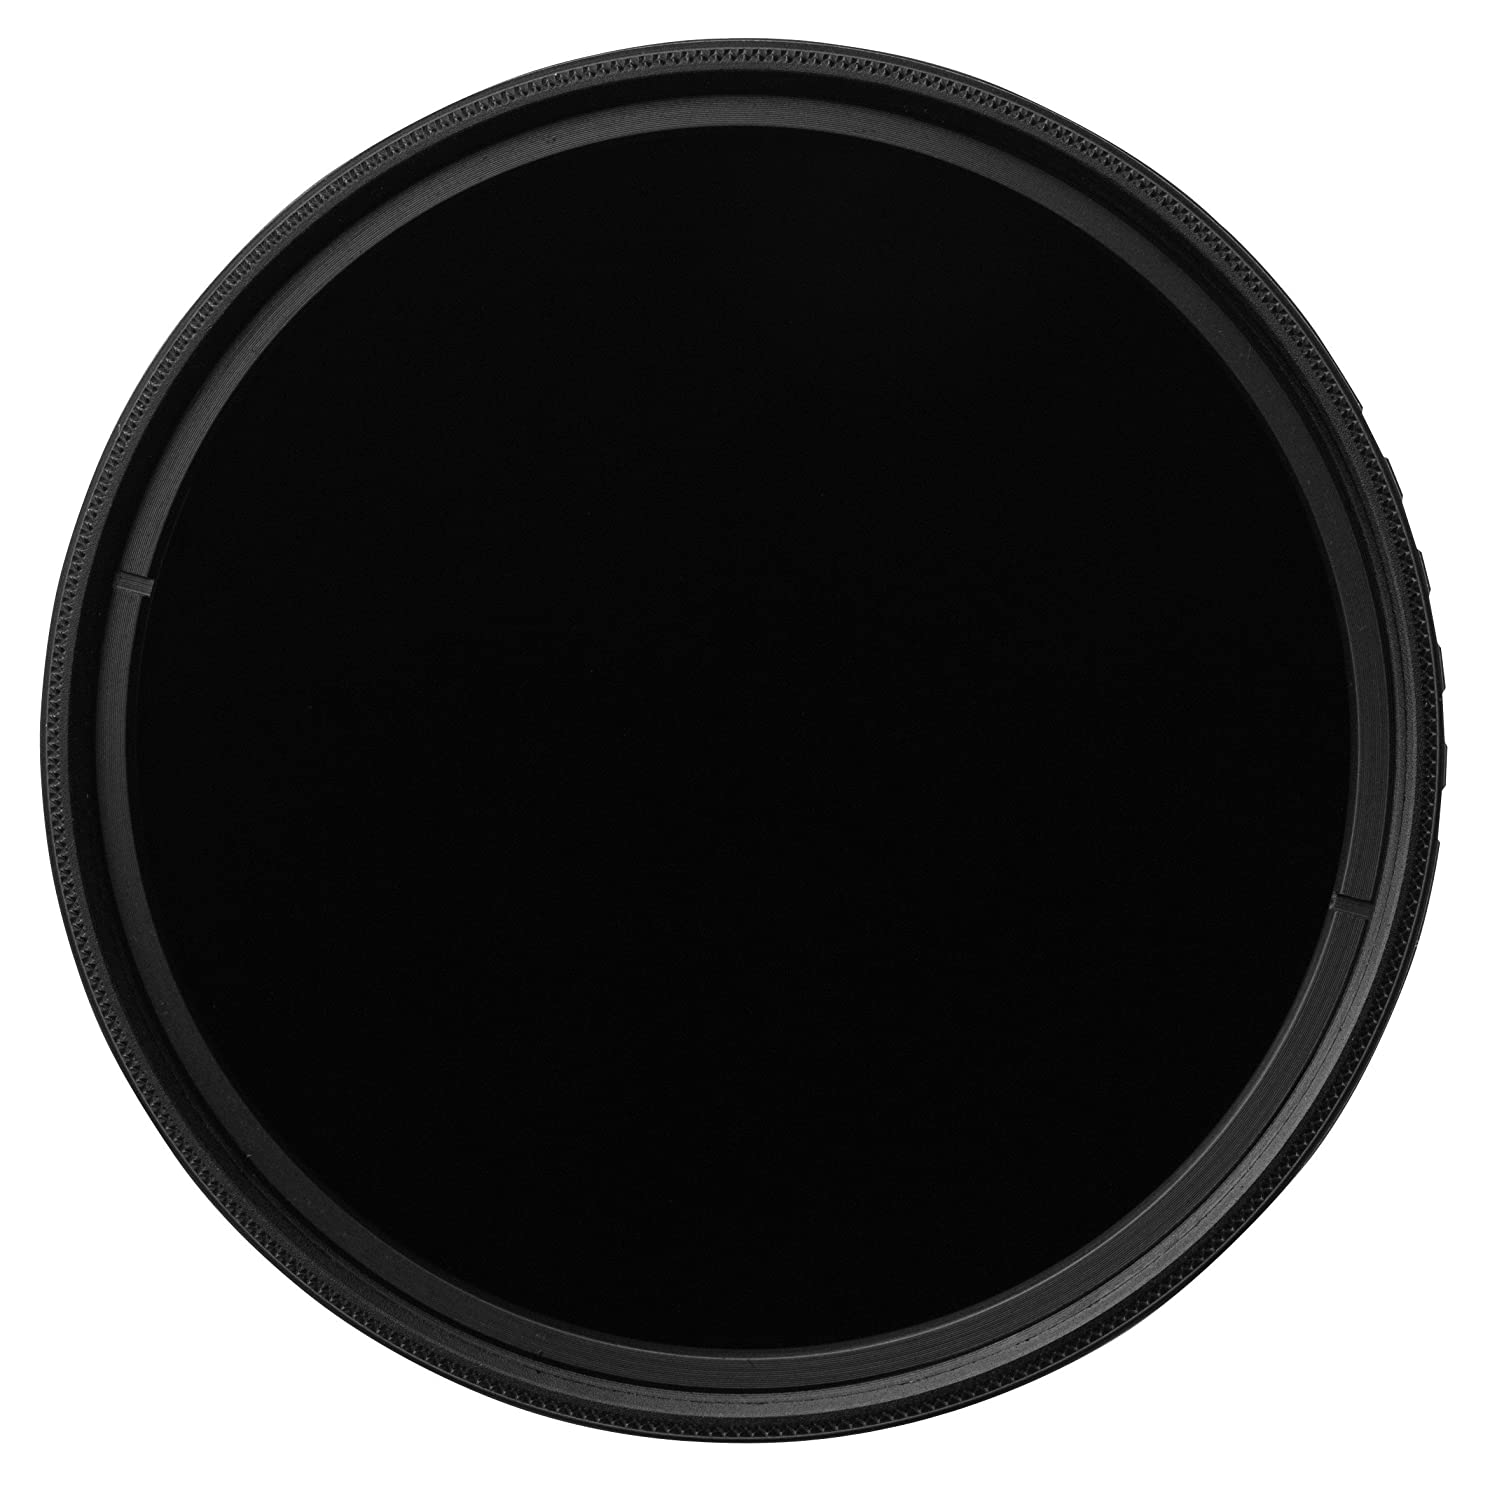 VU SION VSNDV55 55mm Variable Neutral Density Filter (Black) at amazon